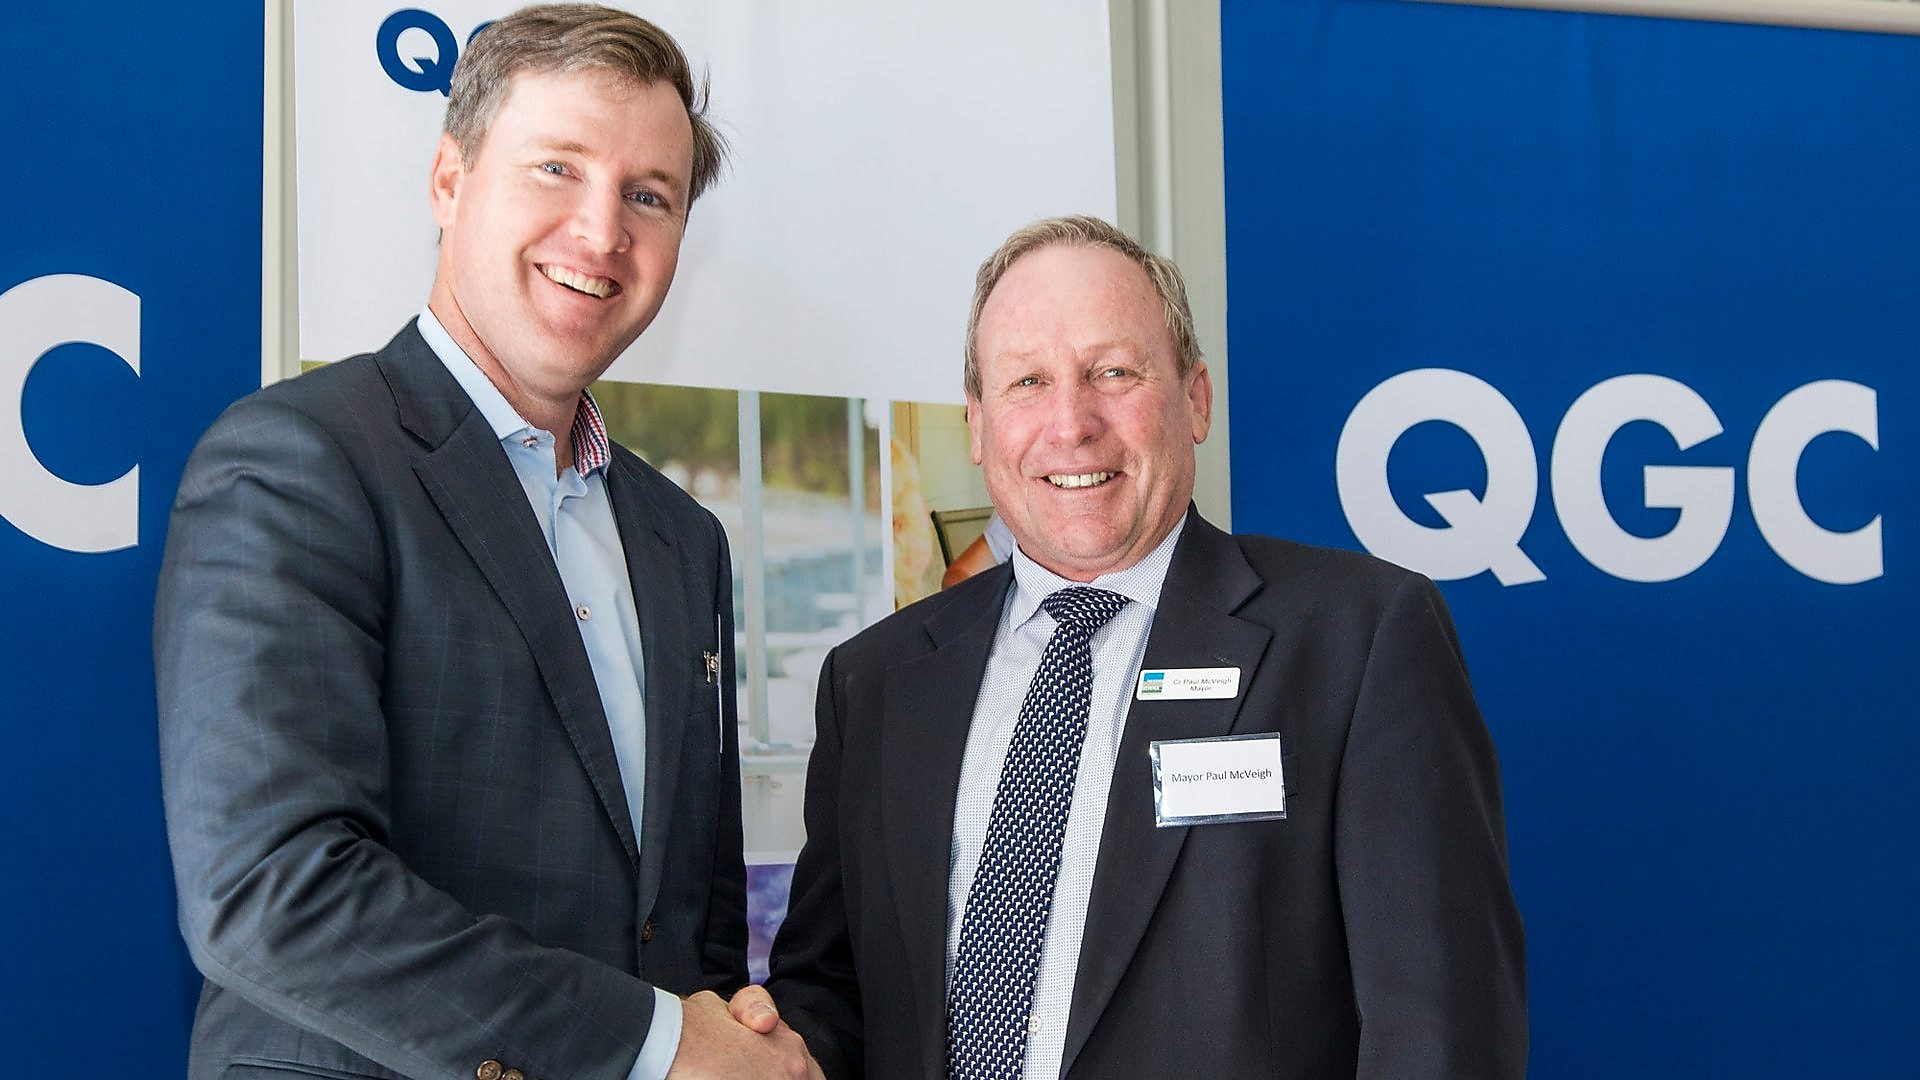 two leaders shaking hands on their QGC lathways launch